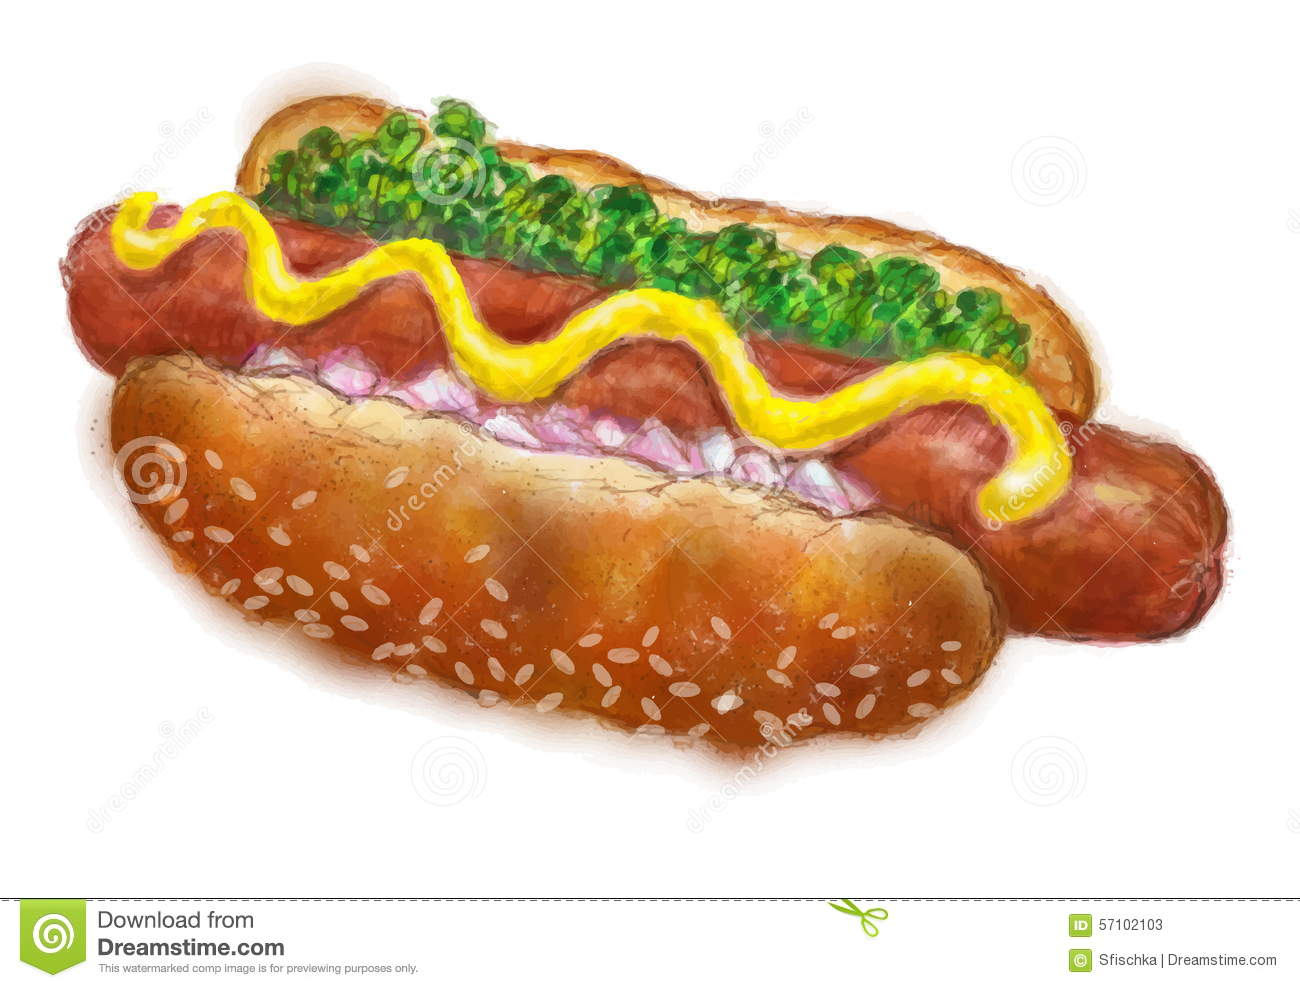 Image Result For How To Draw A Dog On A Bun